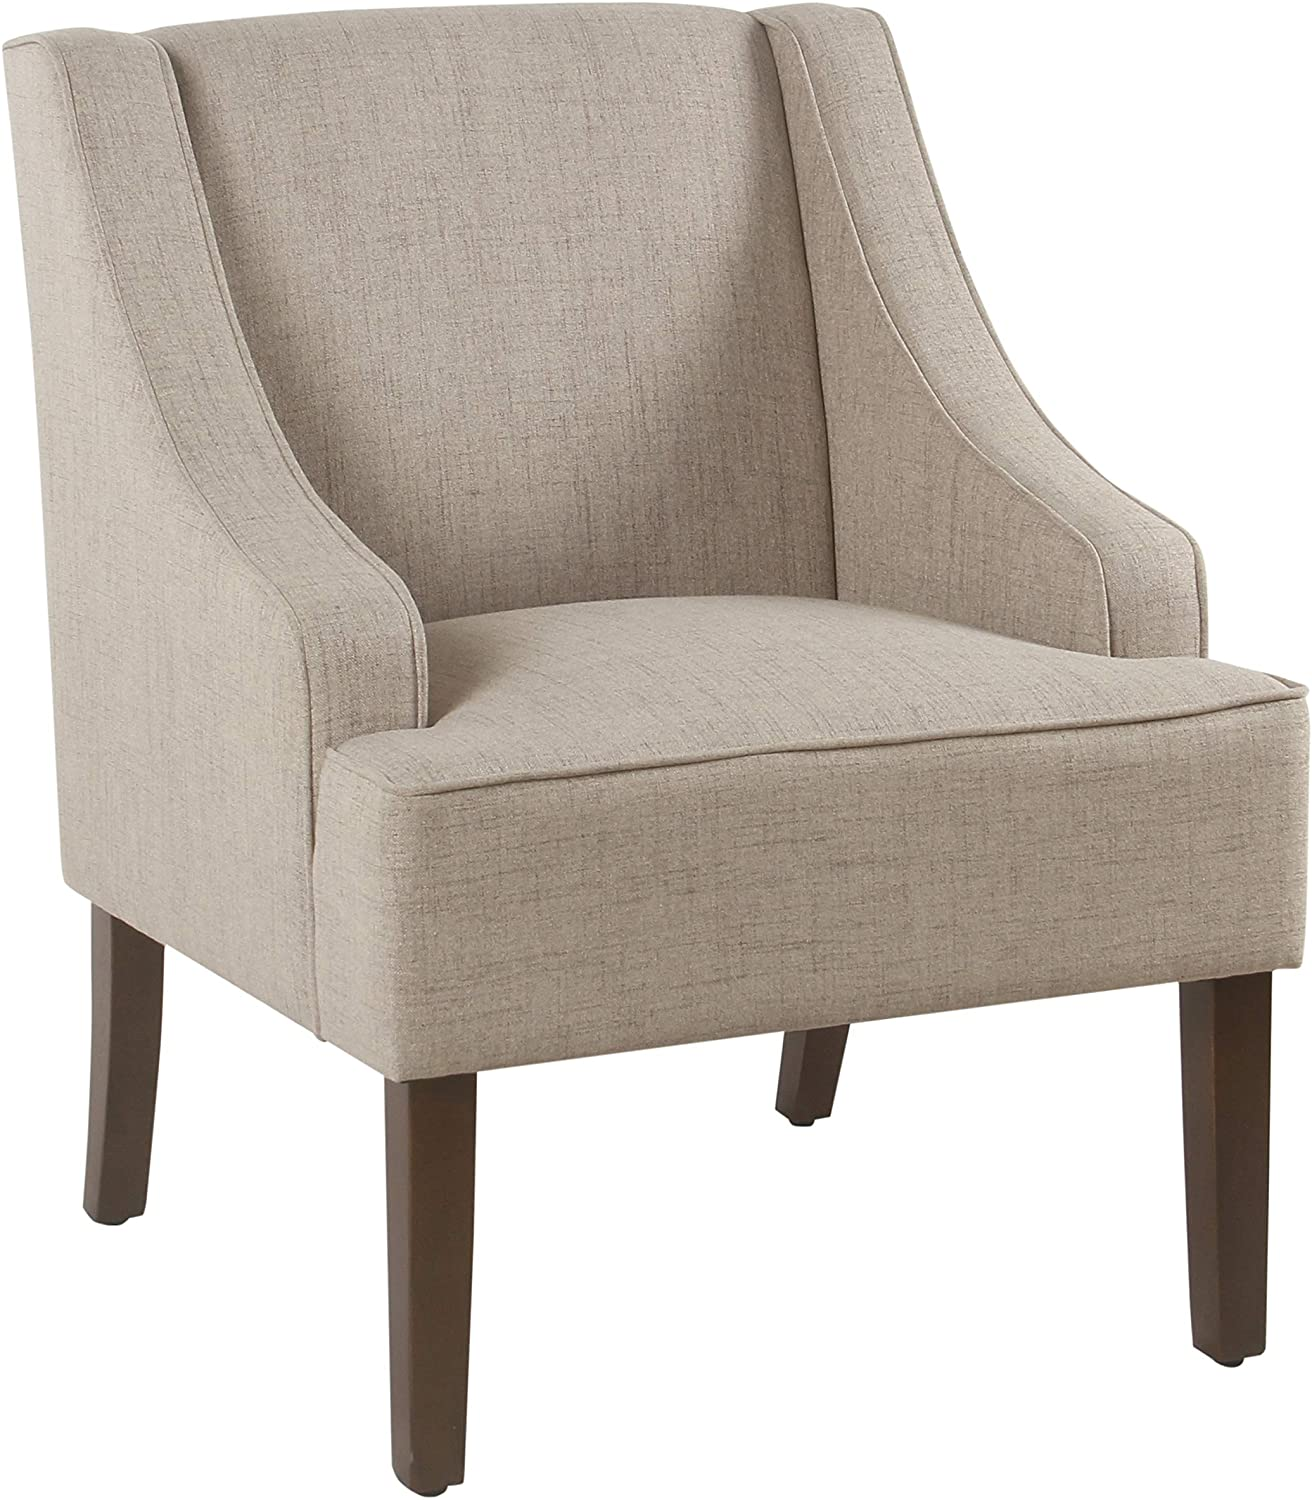 HomePop Classic Swoop Arm Accent Chair, Tan